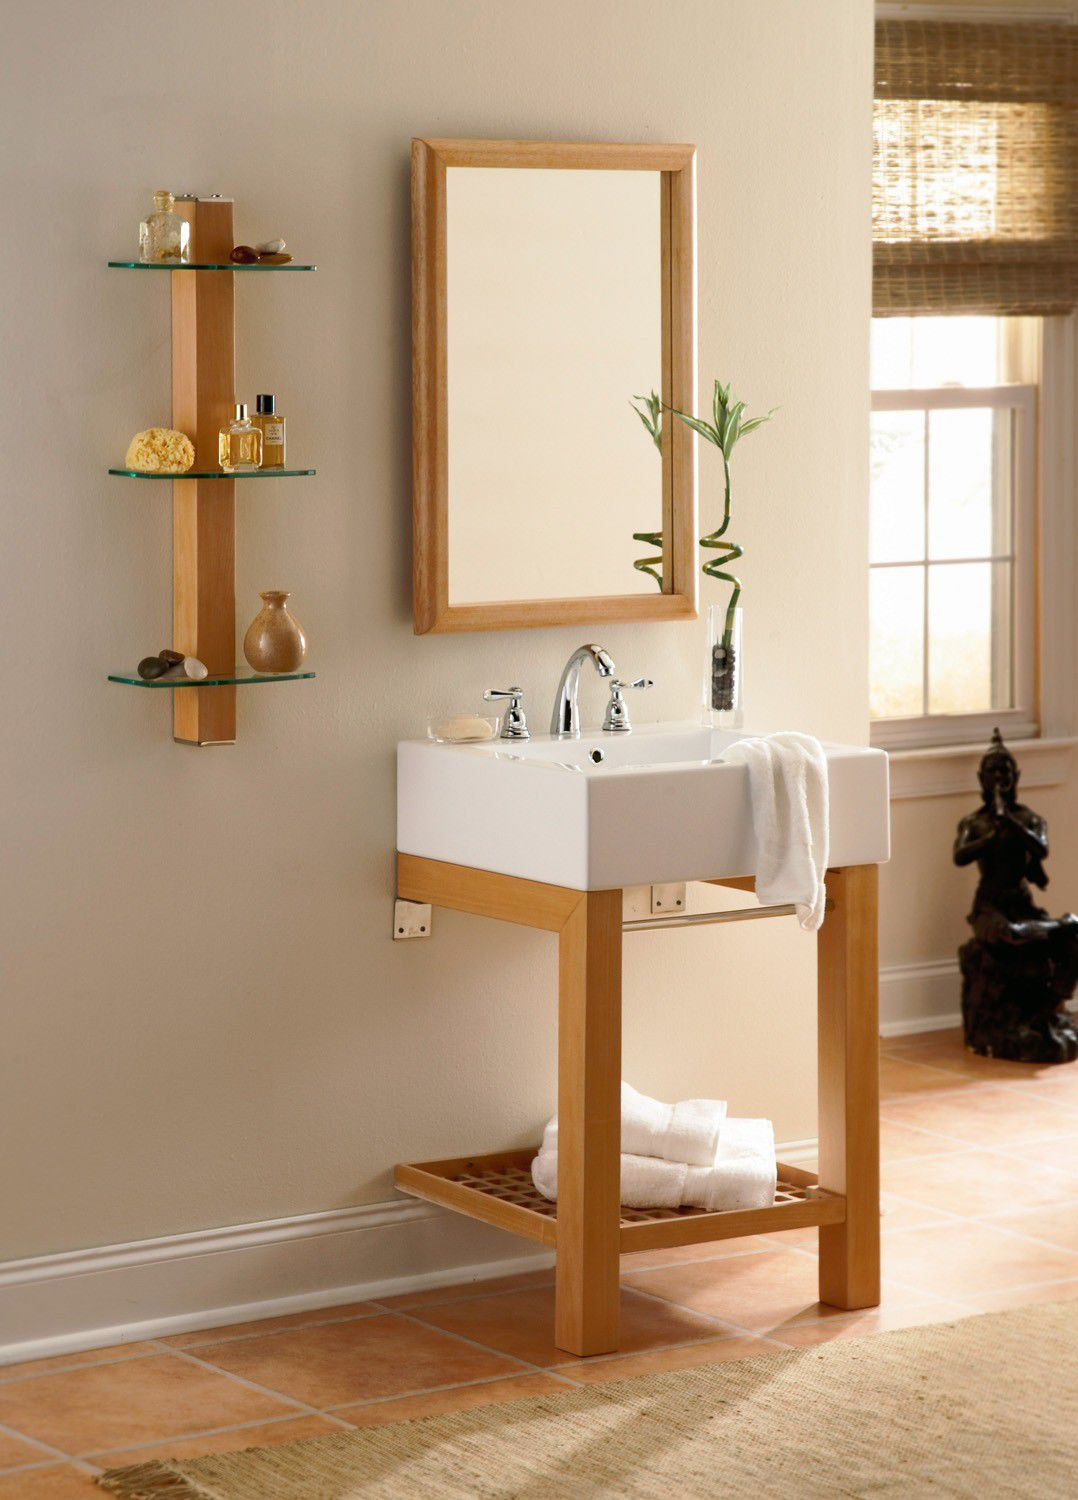 Solid Wood Furniture Kits Elegant Free Standing Washbasin Cabinet solid Wood Traditional